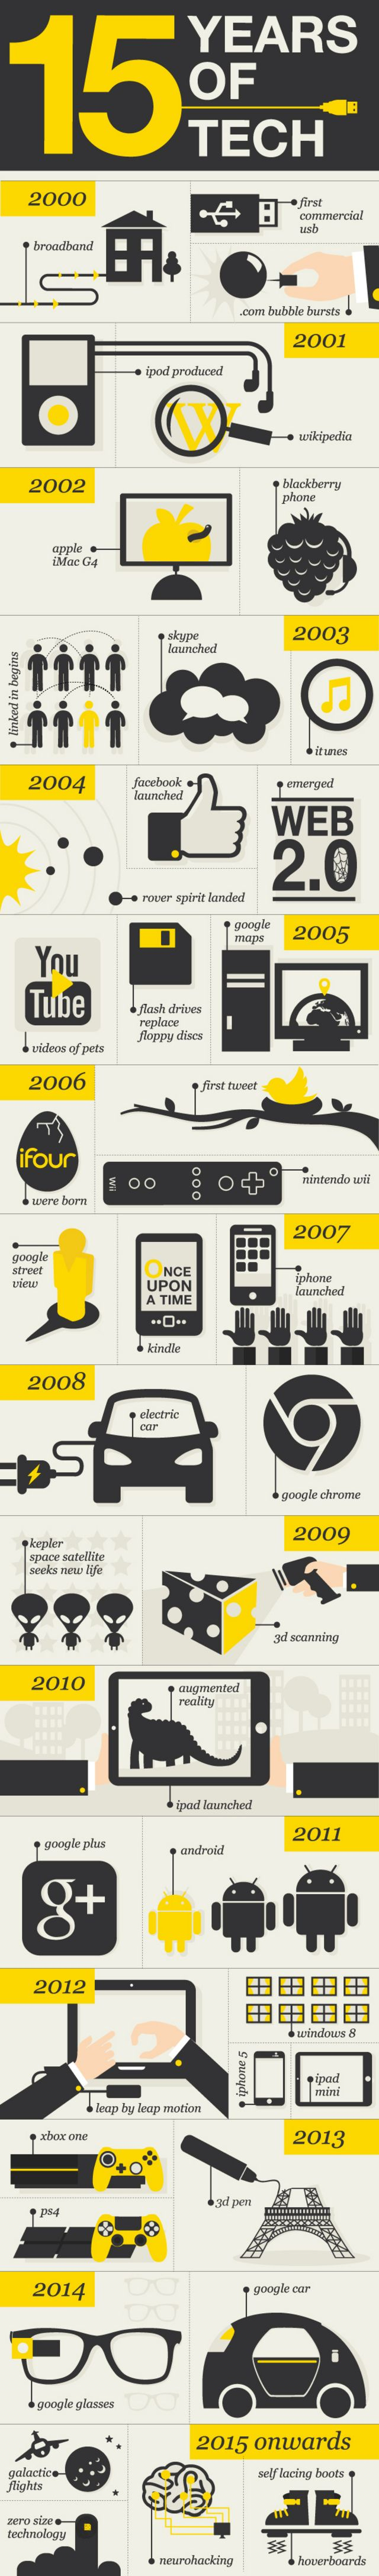 15 Years of Tech #infographic